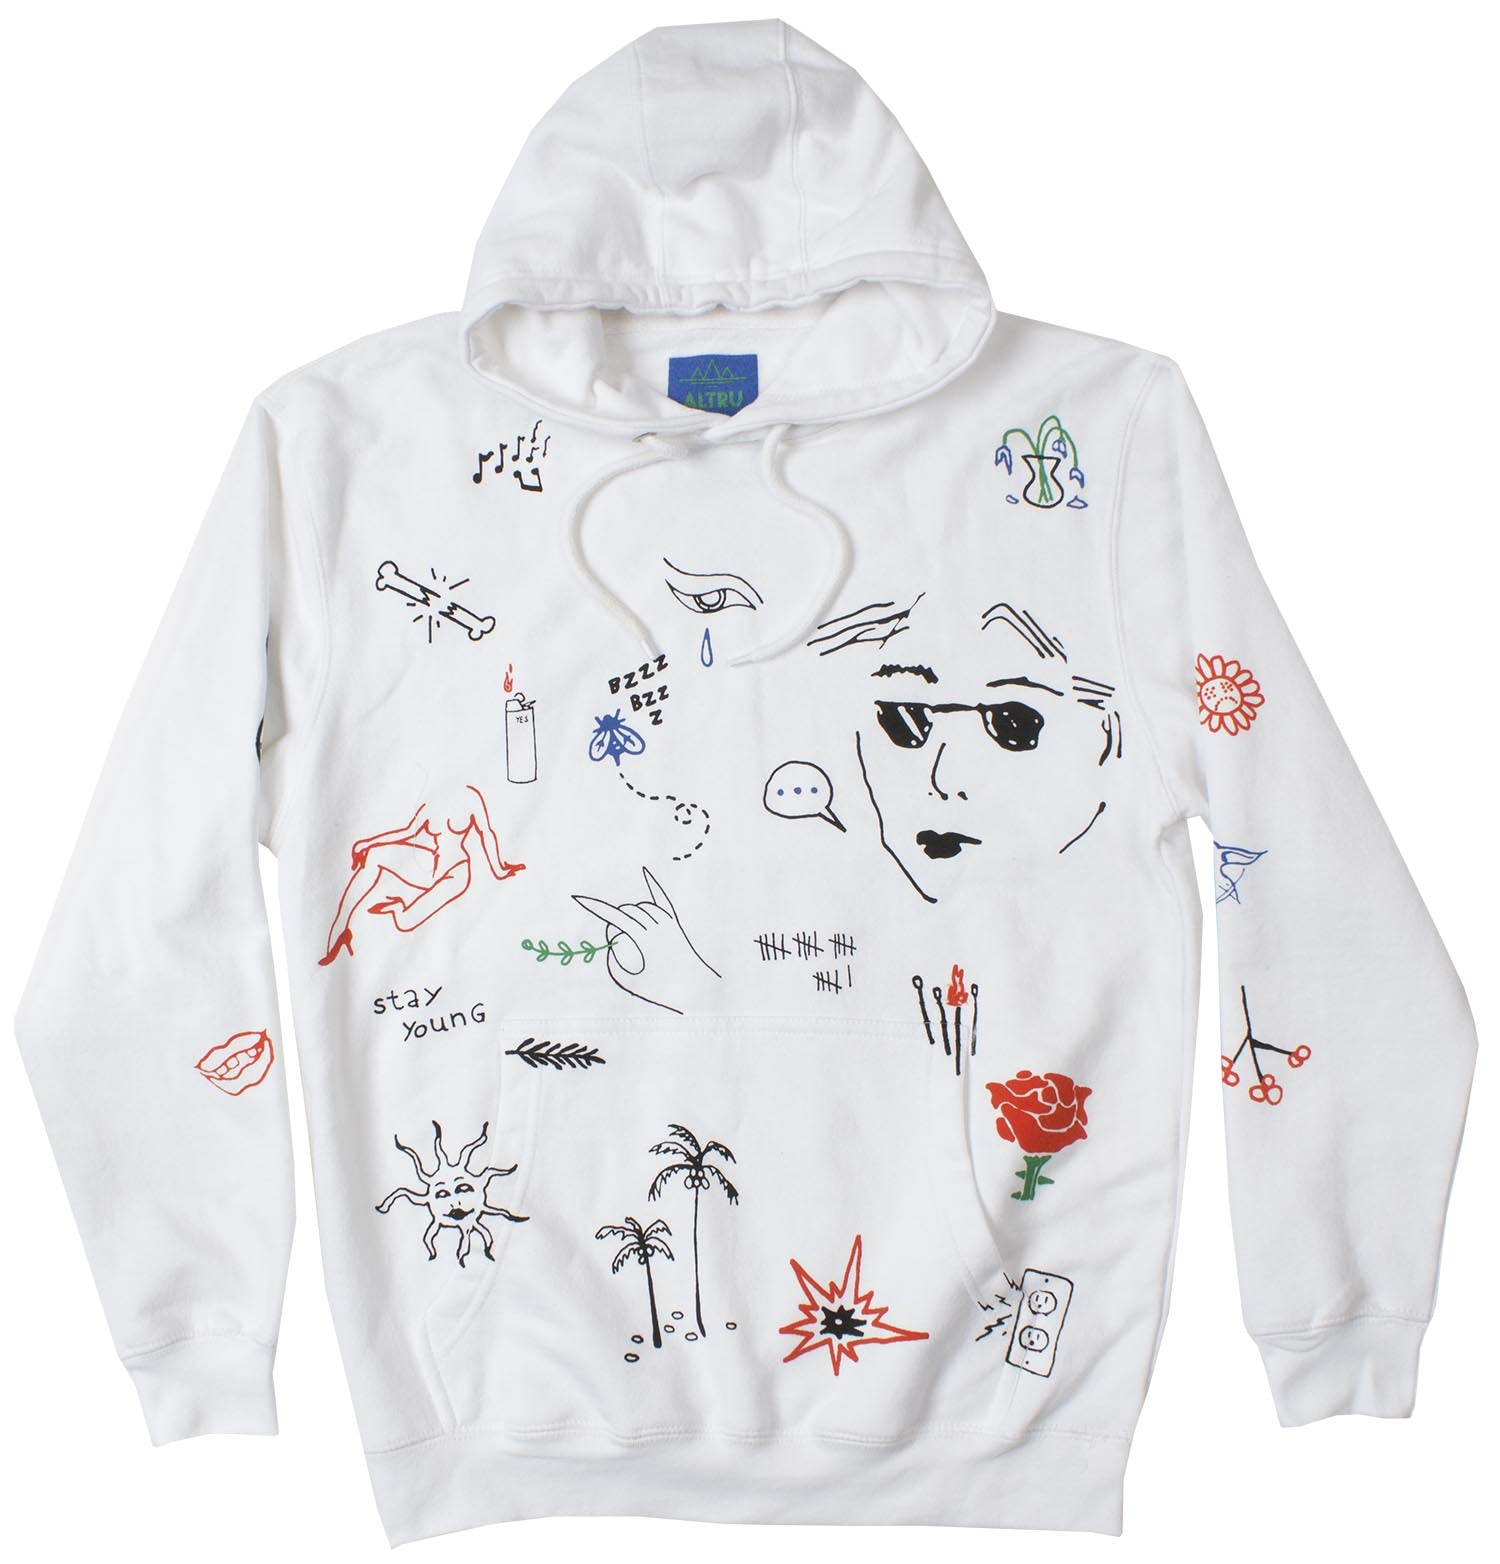 Stick N Poke Art Graphic Hoodie Mens Pullover by Altru Apparel